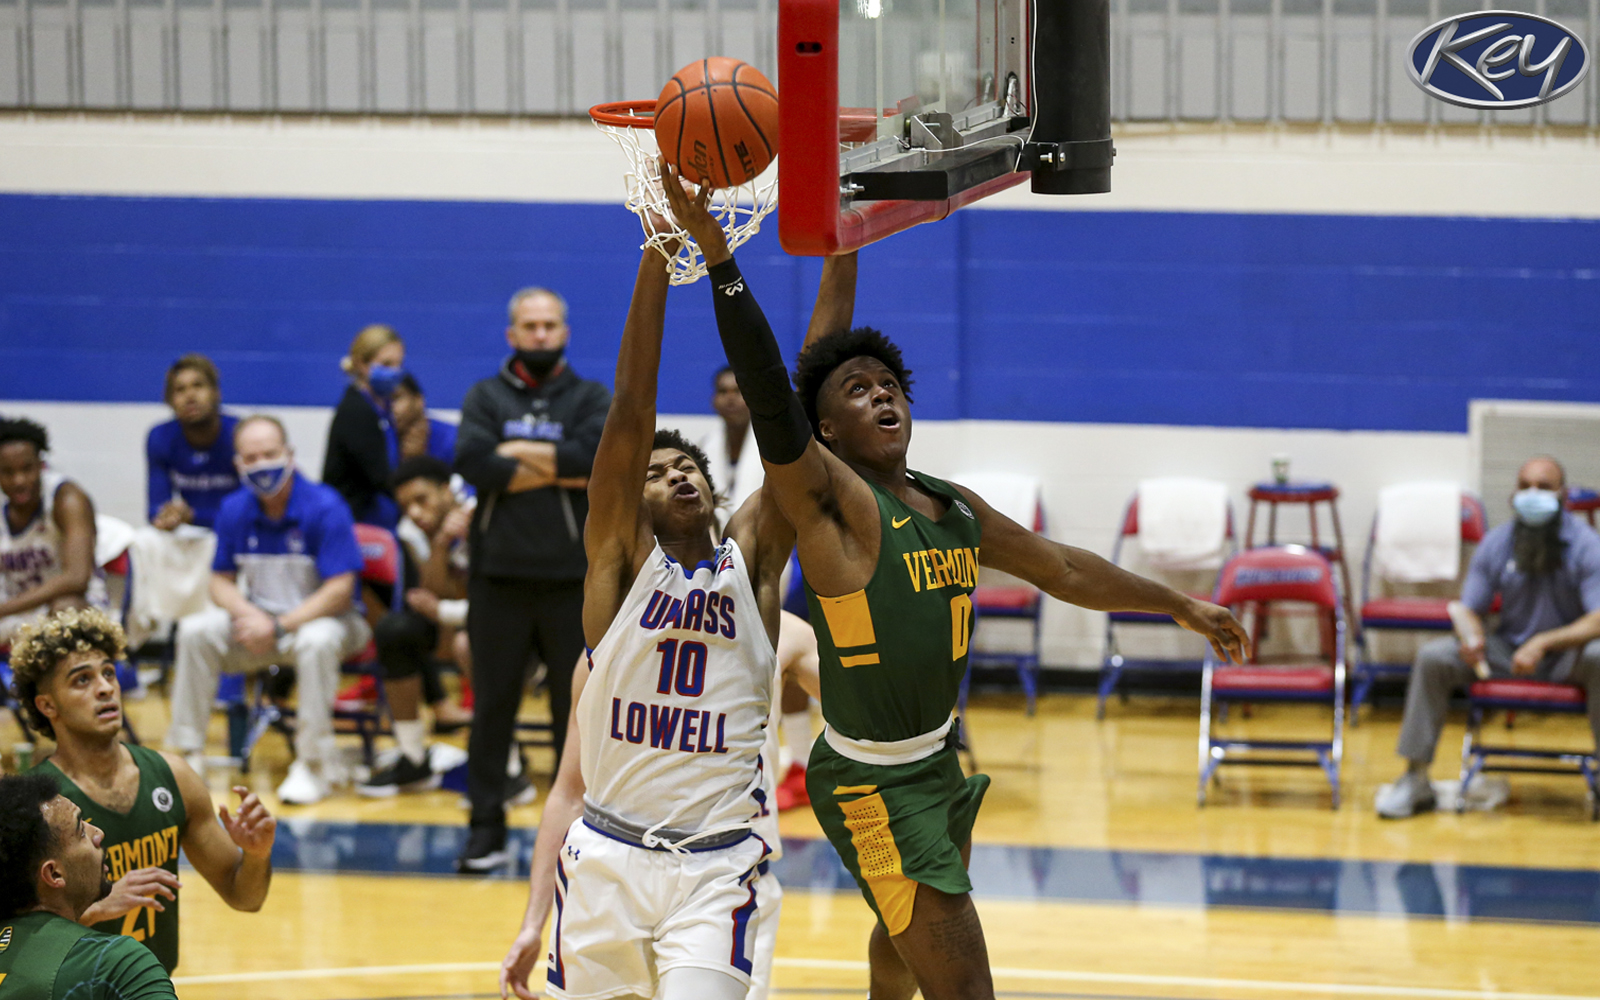 Men S Hoops Suffers Setback At Umass Lowell In Season Opener University Of Vermont Athletics